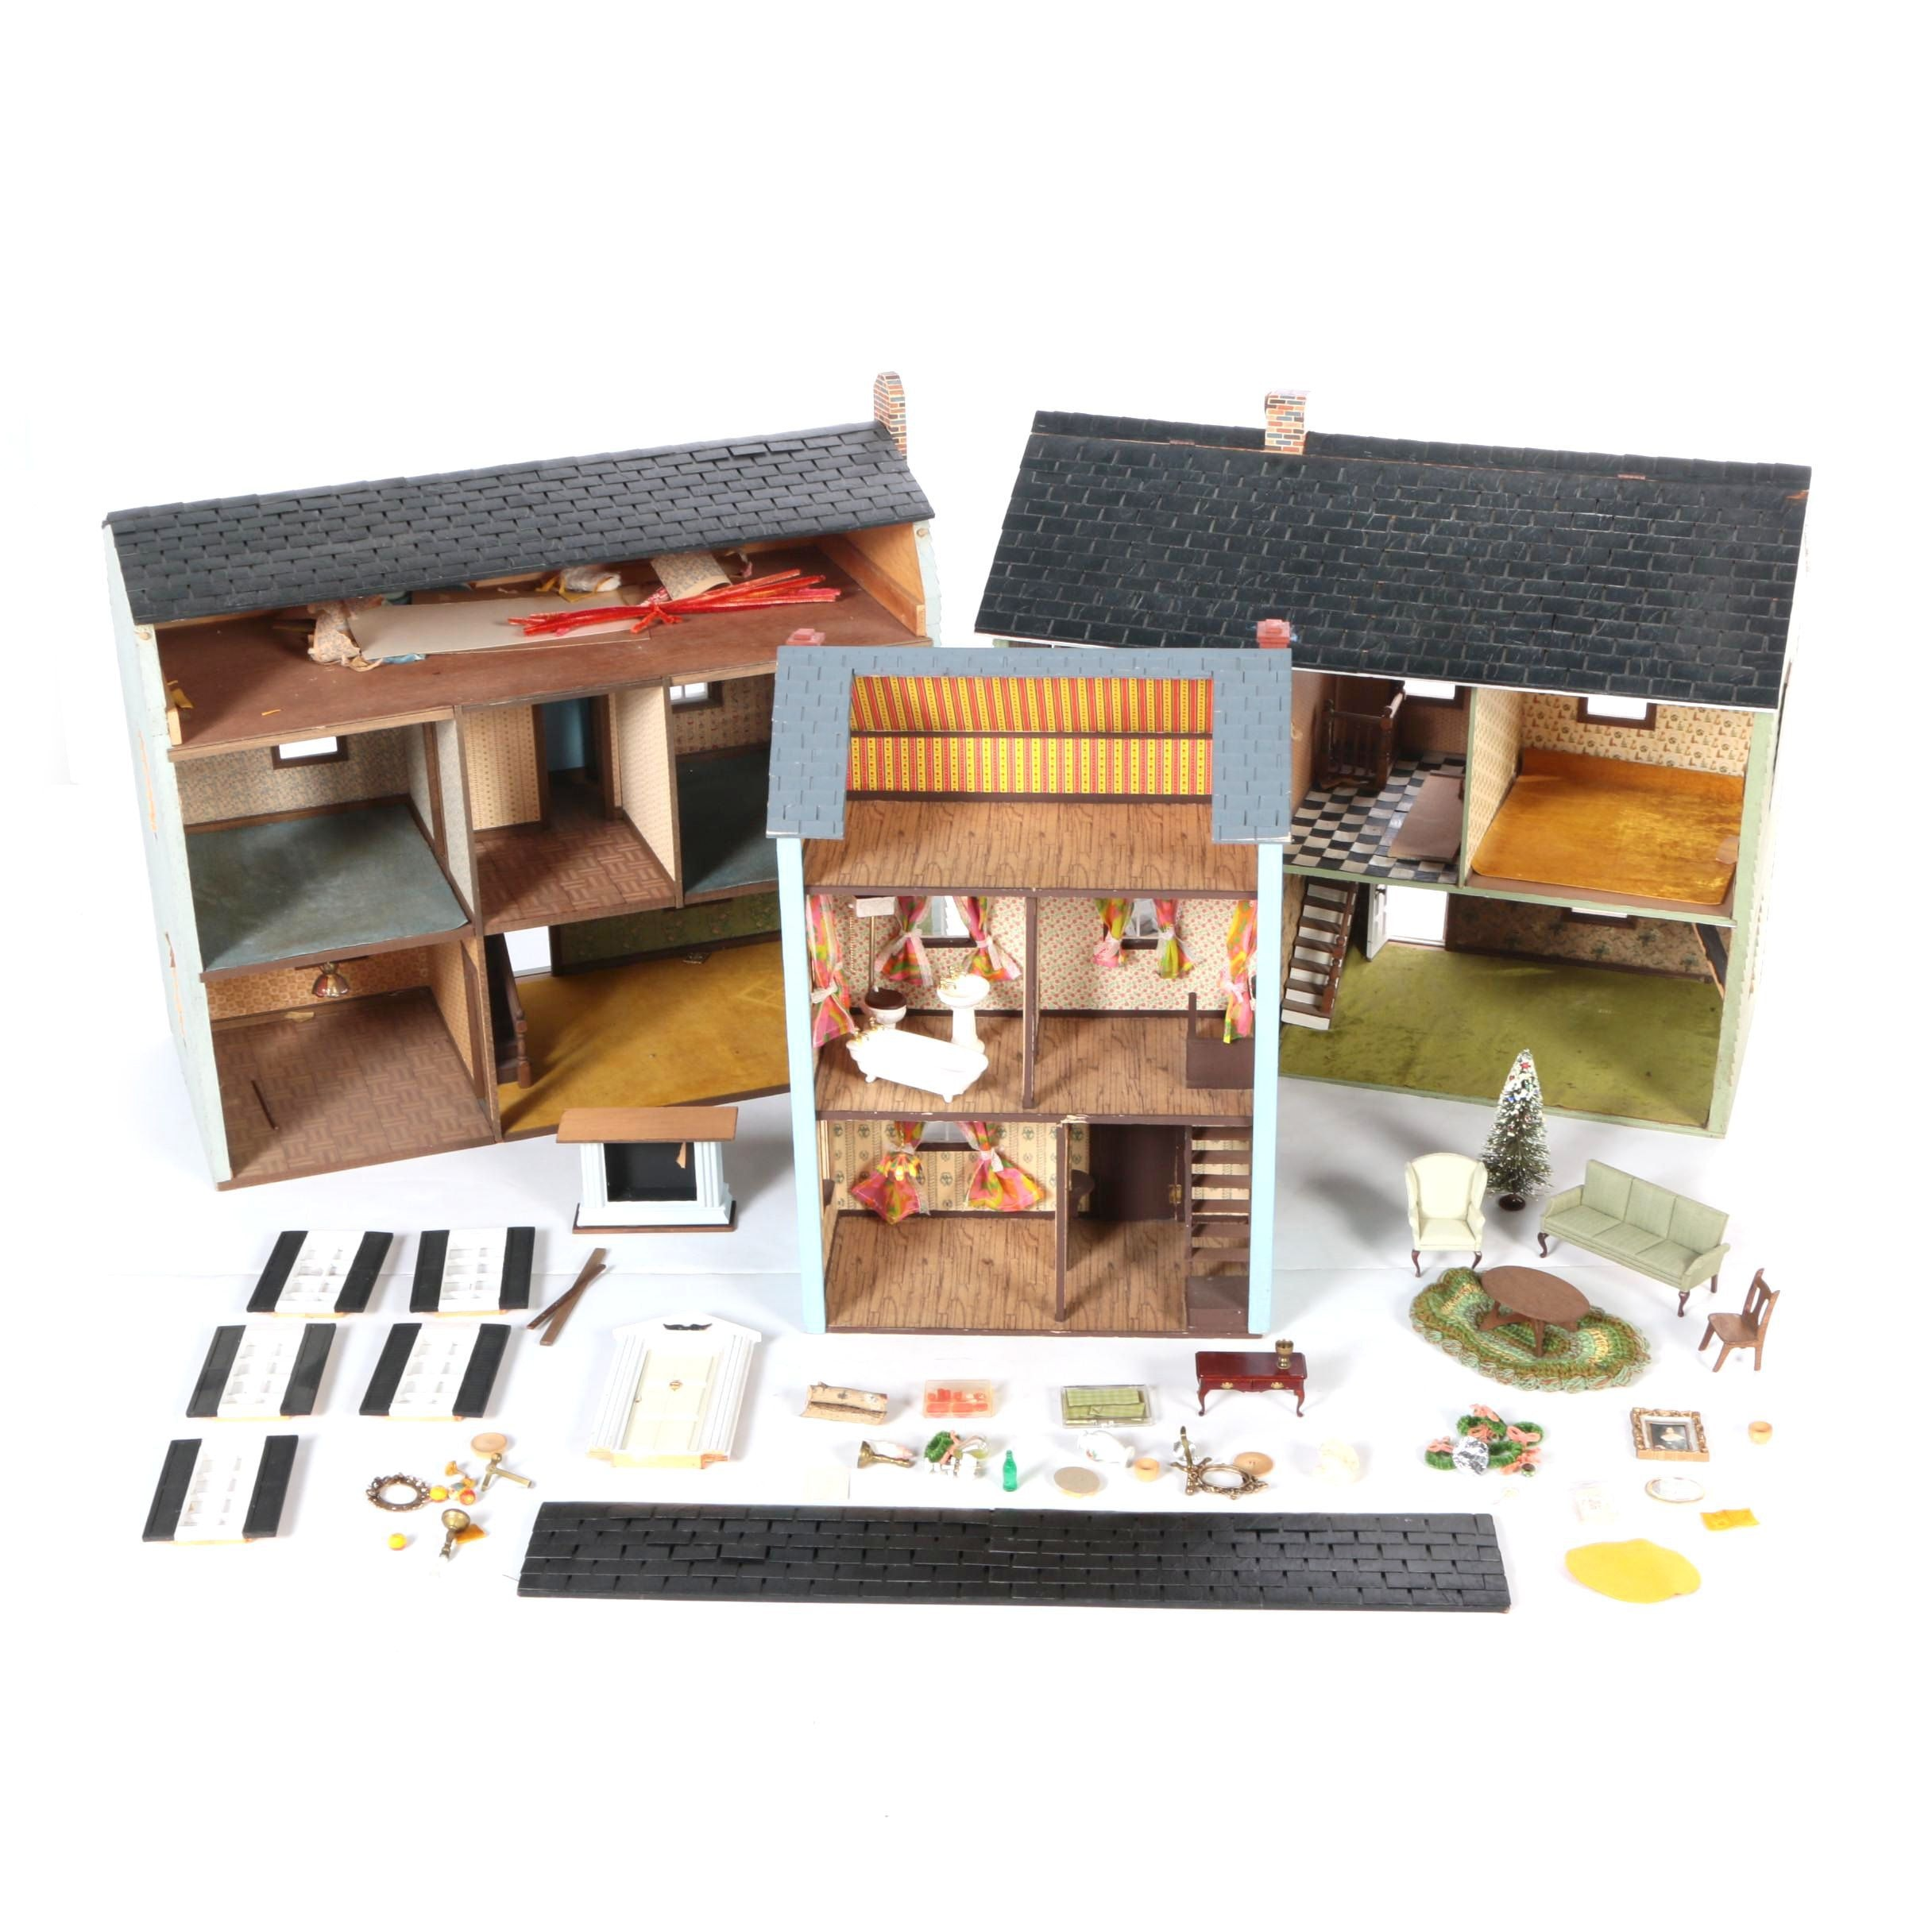 Wood Doll Houses with Furniture